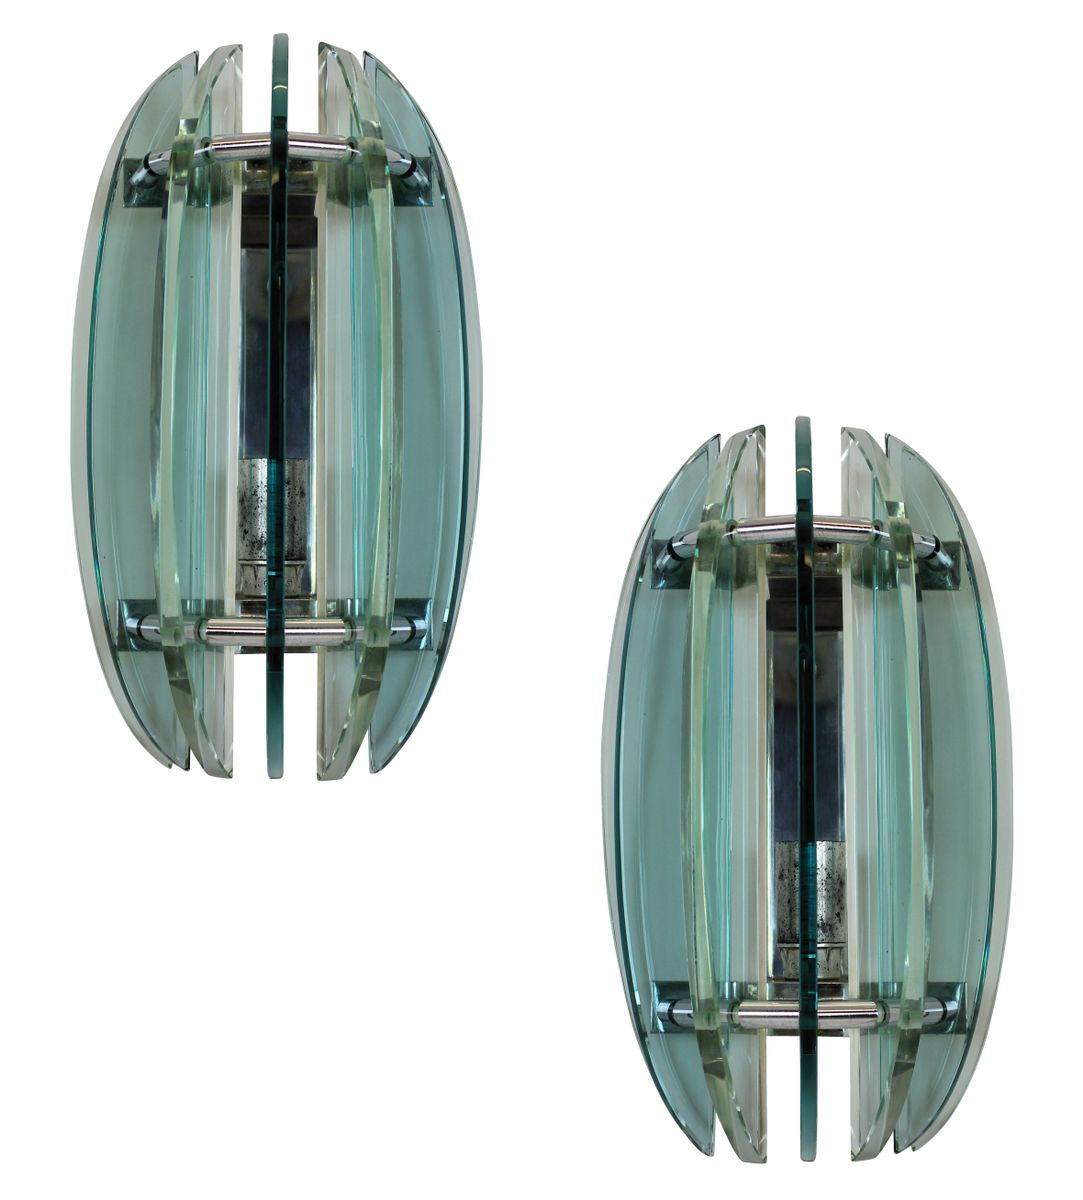 Wall Sconces Set Of 2 : Wall Sconces from Veca, 1950s, Set of 2 for sale at Pamono